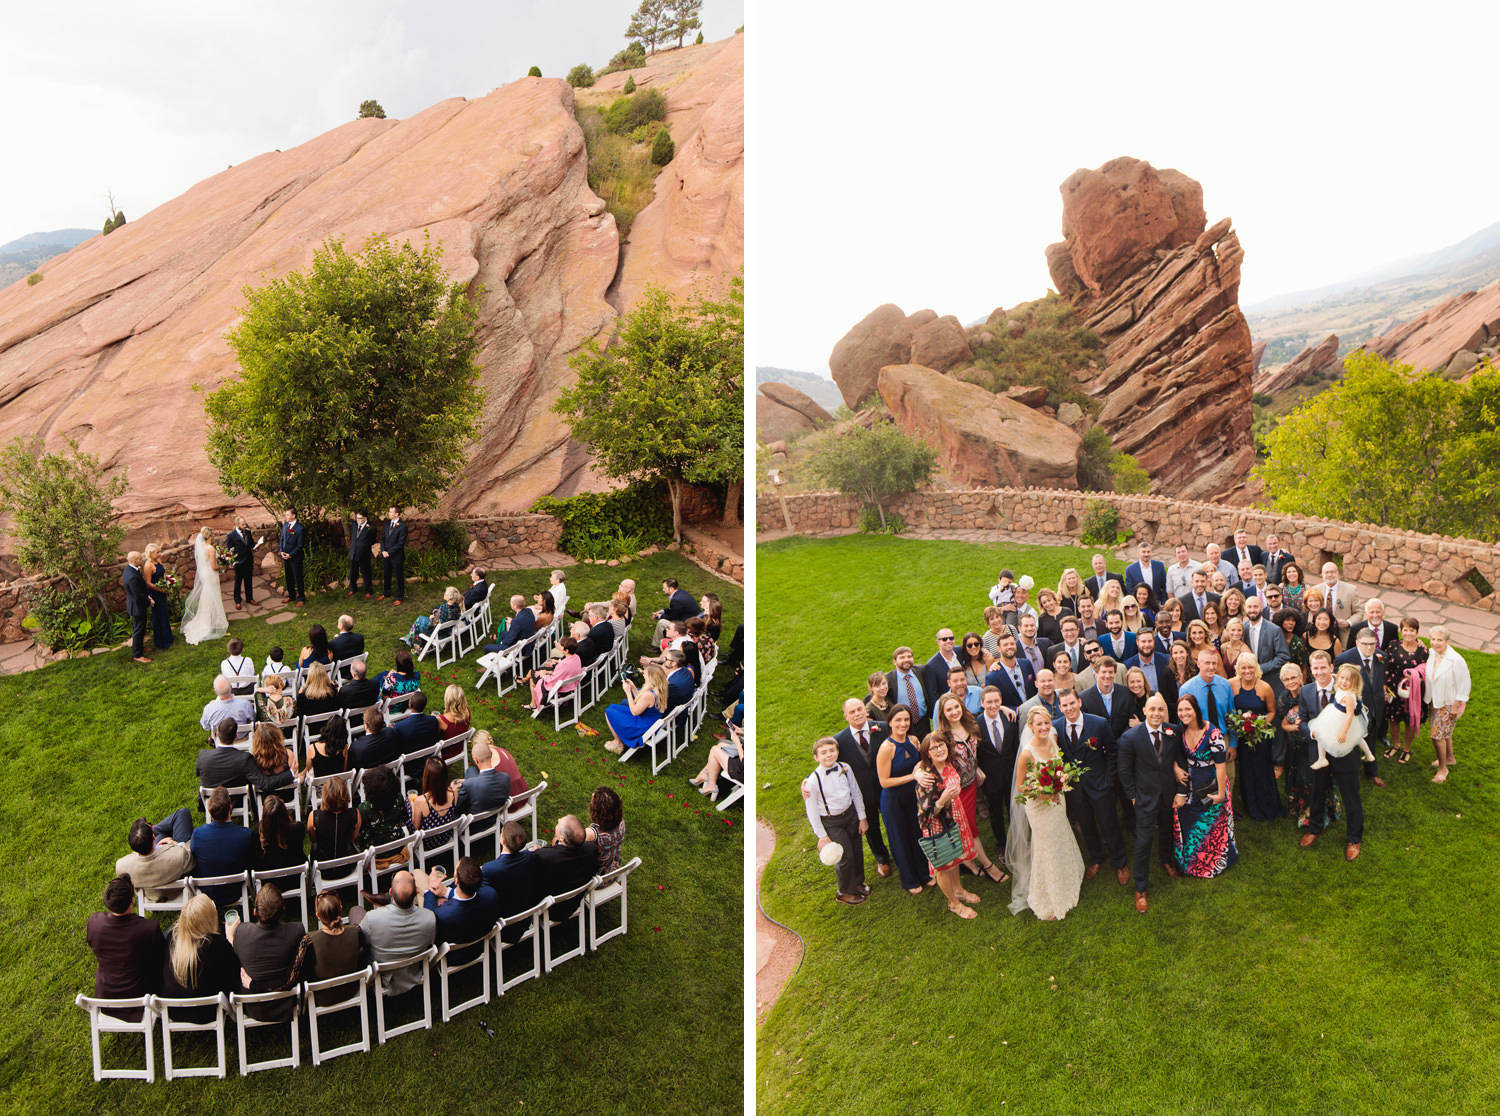 red-rocks-wedding-photographer-denver-tomKphoto-011.jpg